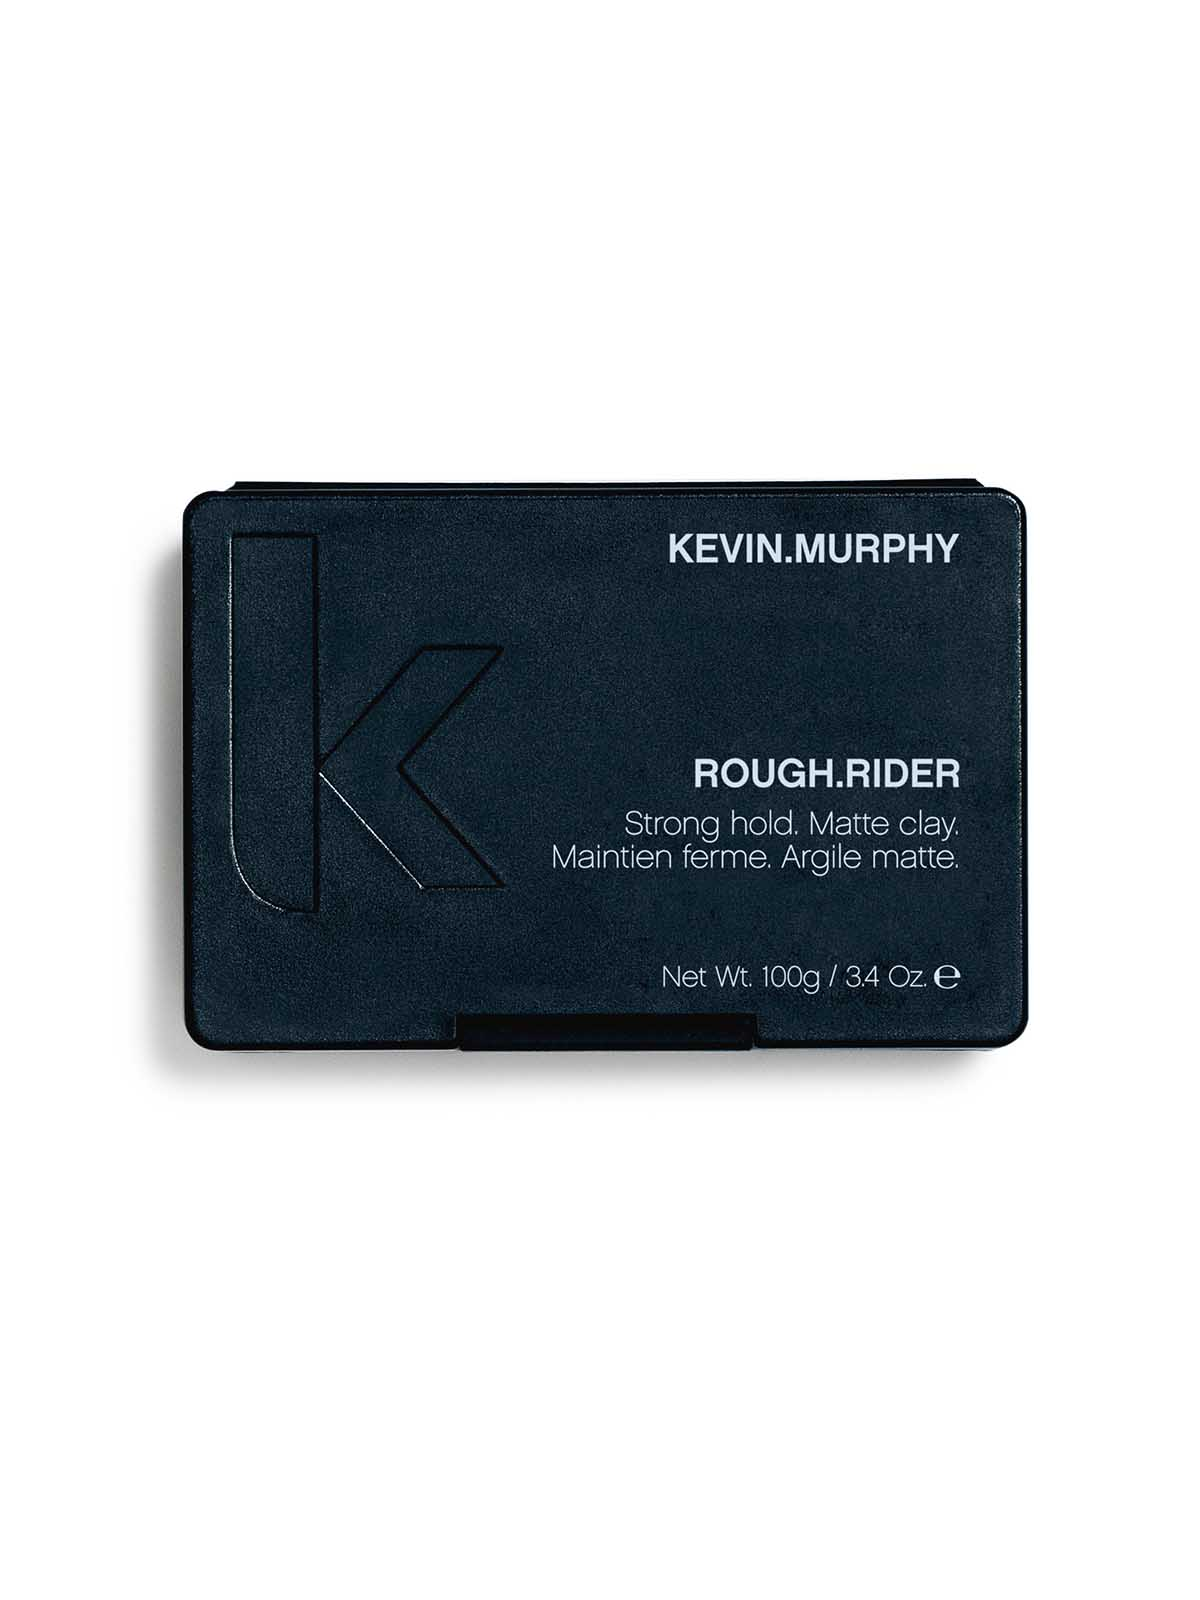 KEVIN.MURPHY ROUGH.RIDER